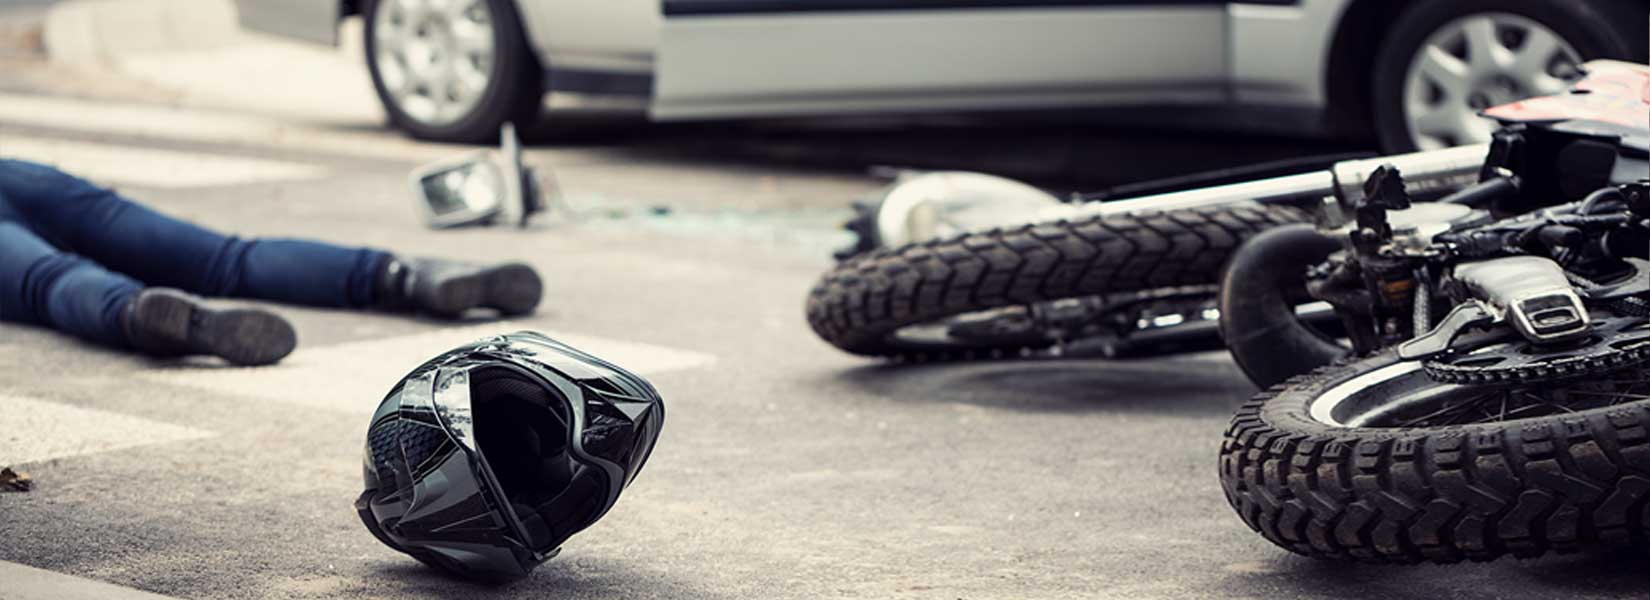 Motorcycle Accidents in Louisiana